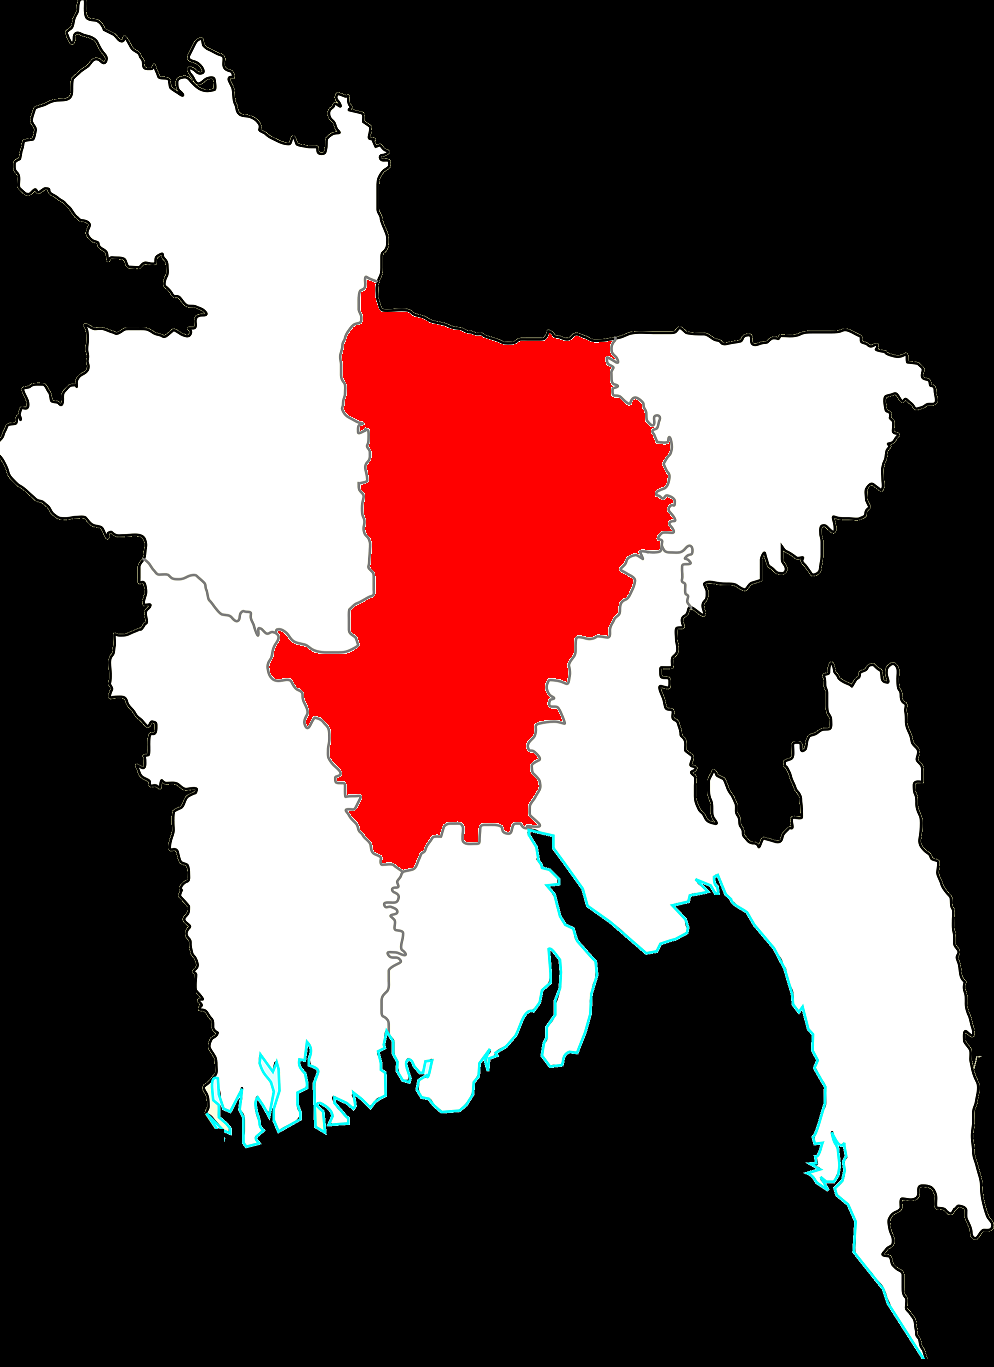 http://en.wikipedia.org/wiki/Divisions_of_Bangladesh